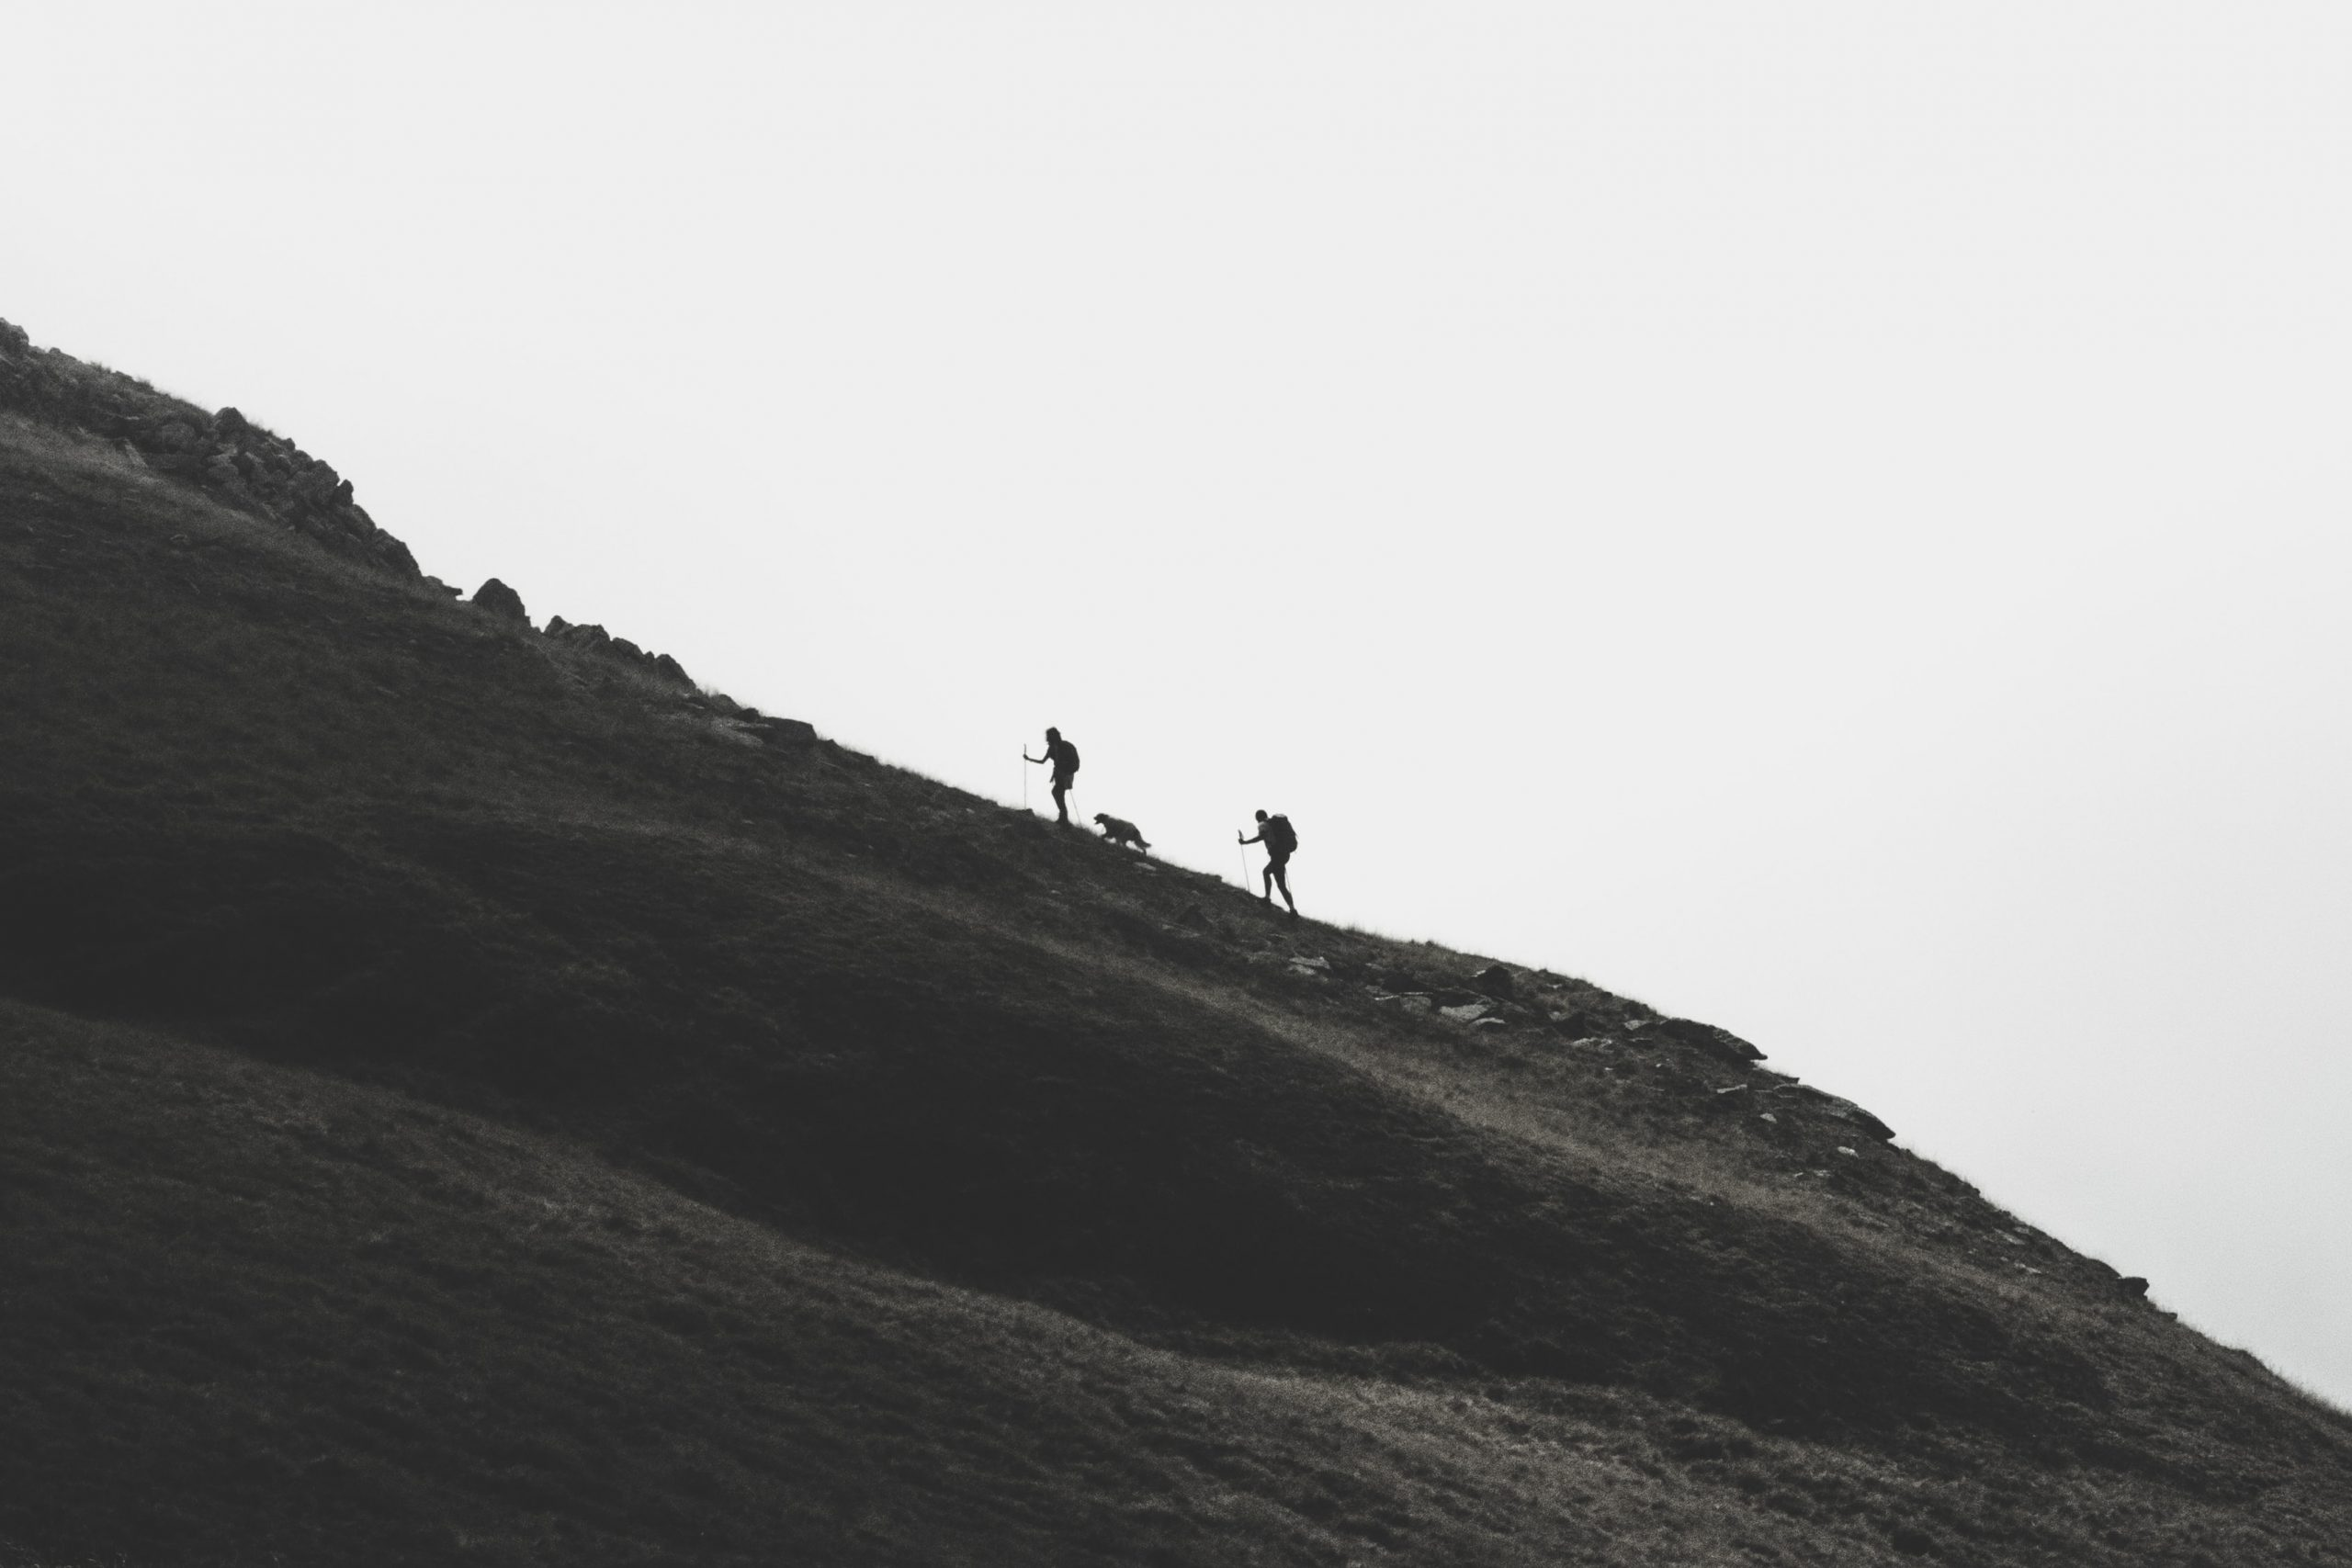 Hikers on a slope